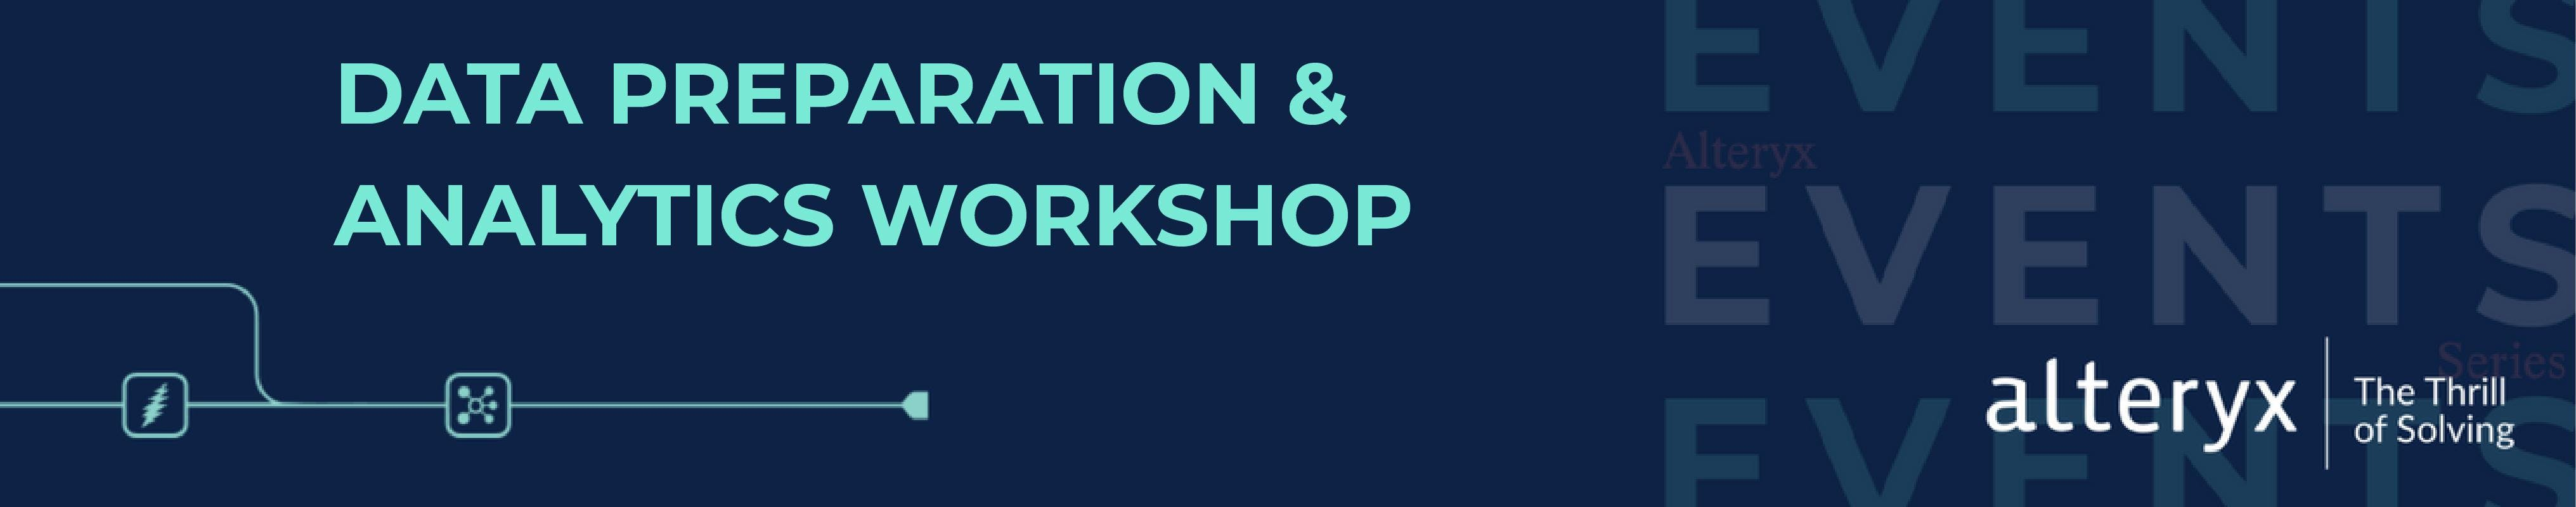 Alteryx Data Preparation & Analytics Workshop